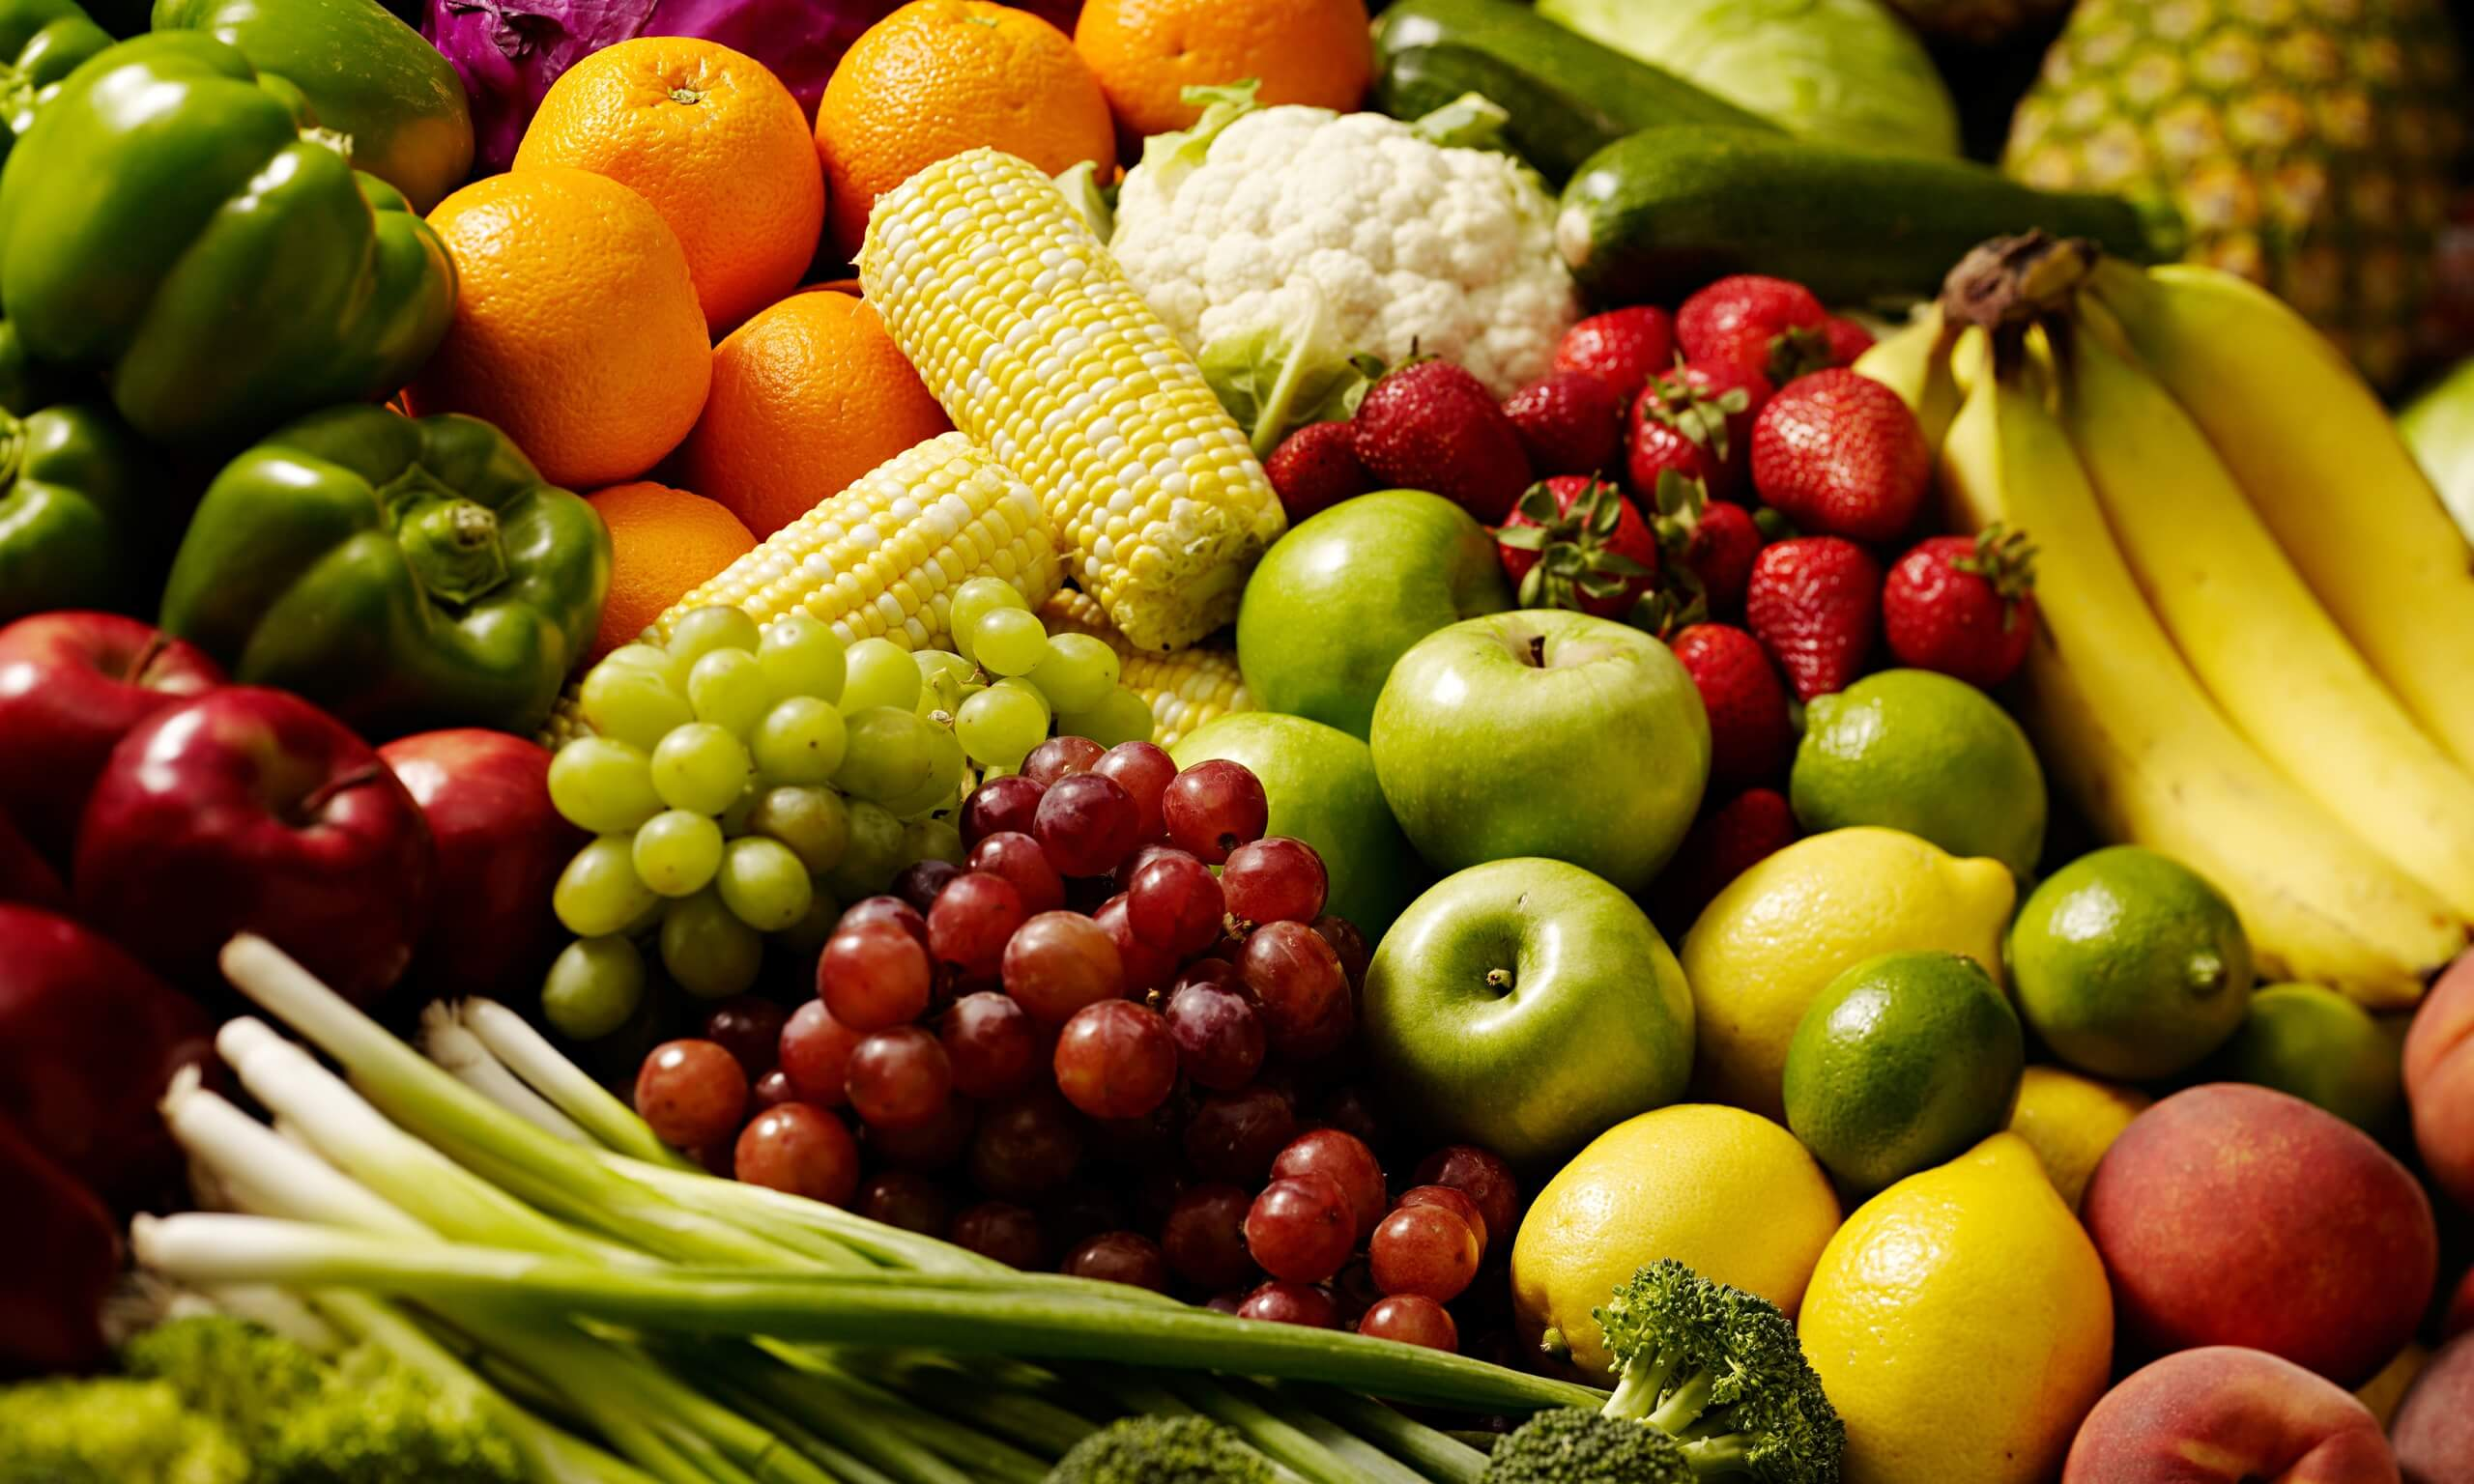 Fruit and vegetables 3 16 18 1